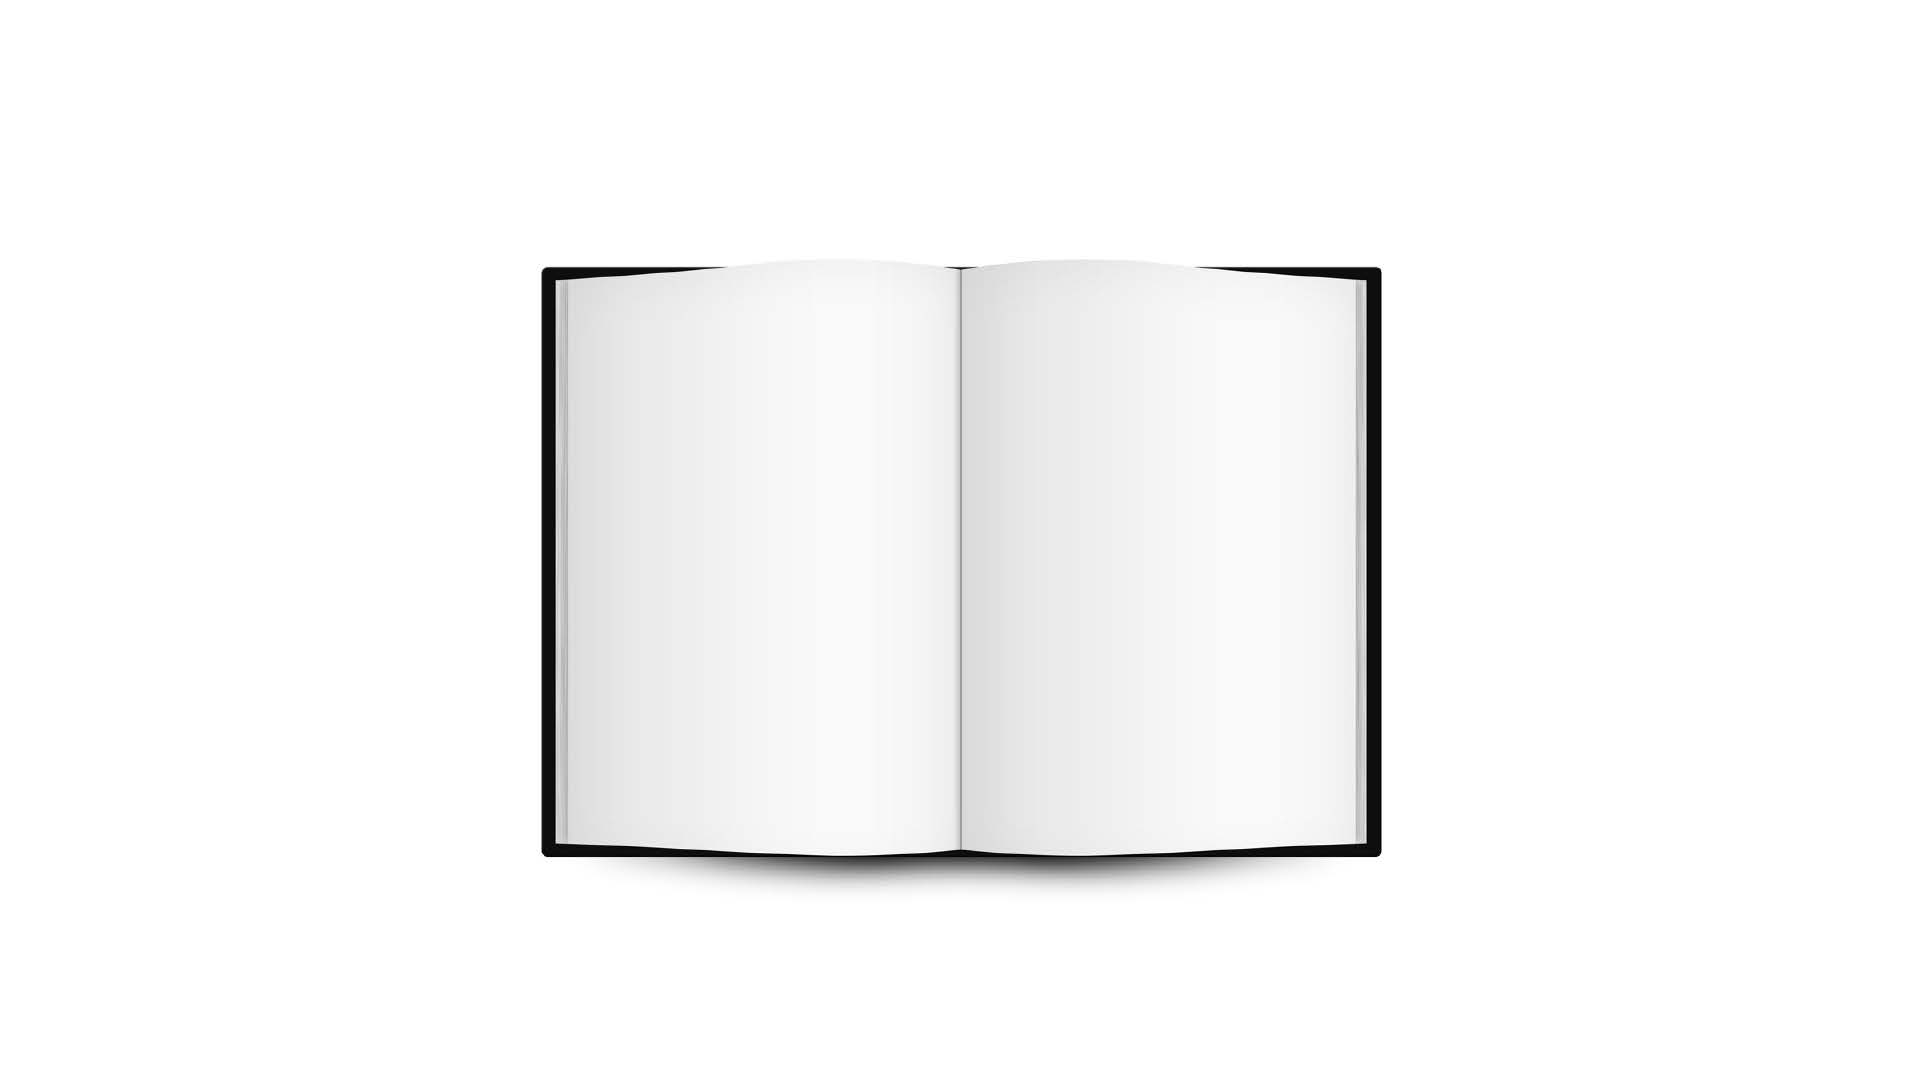 a_DesignGuide_Page_06.png